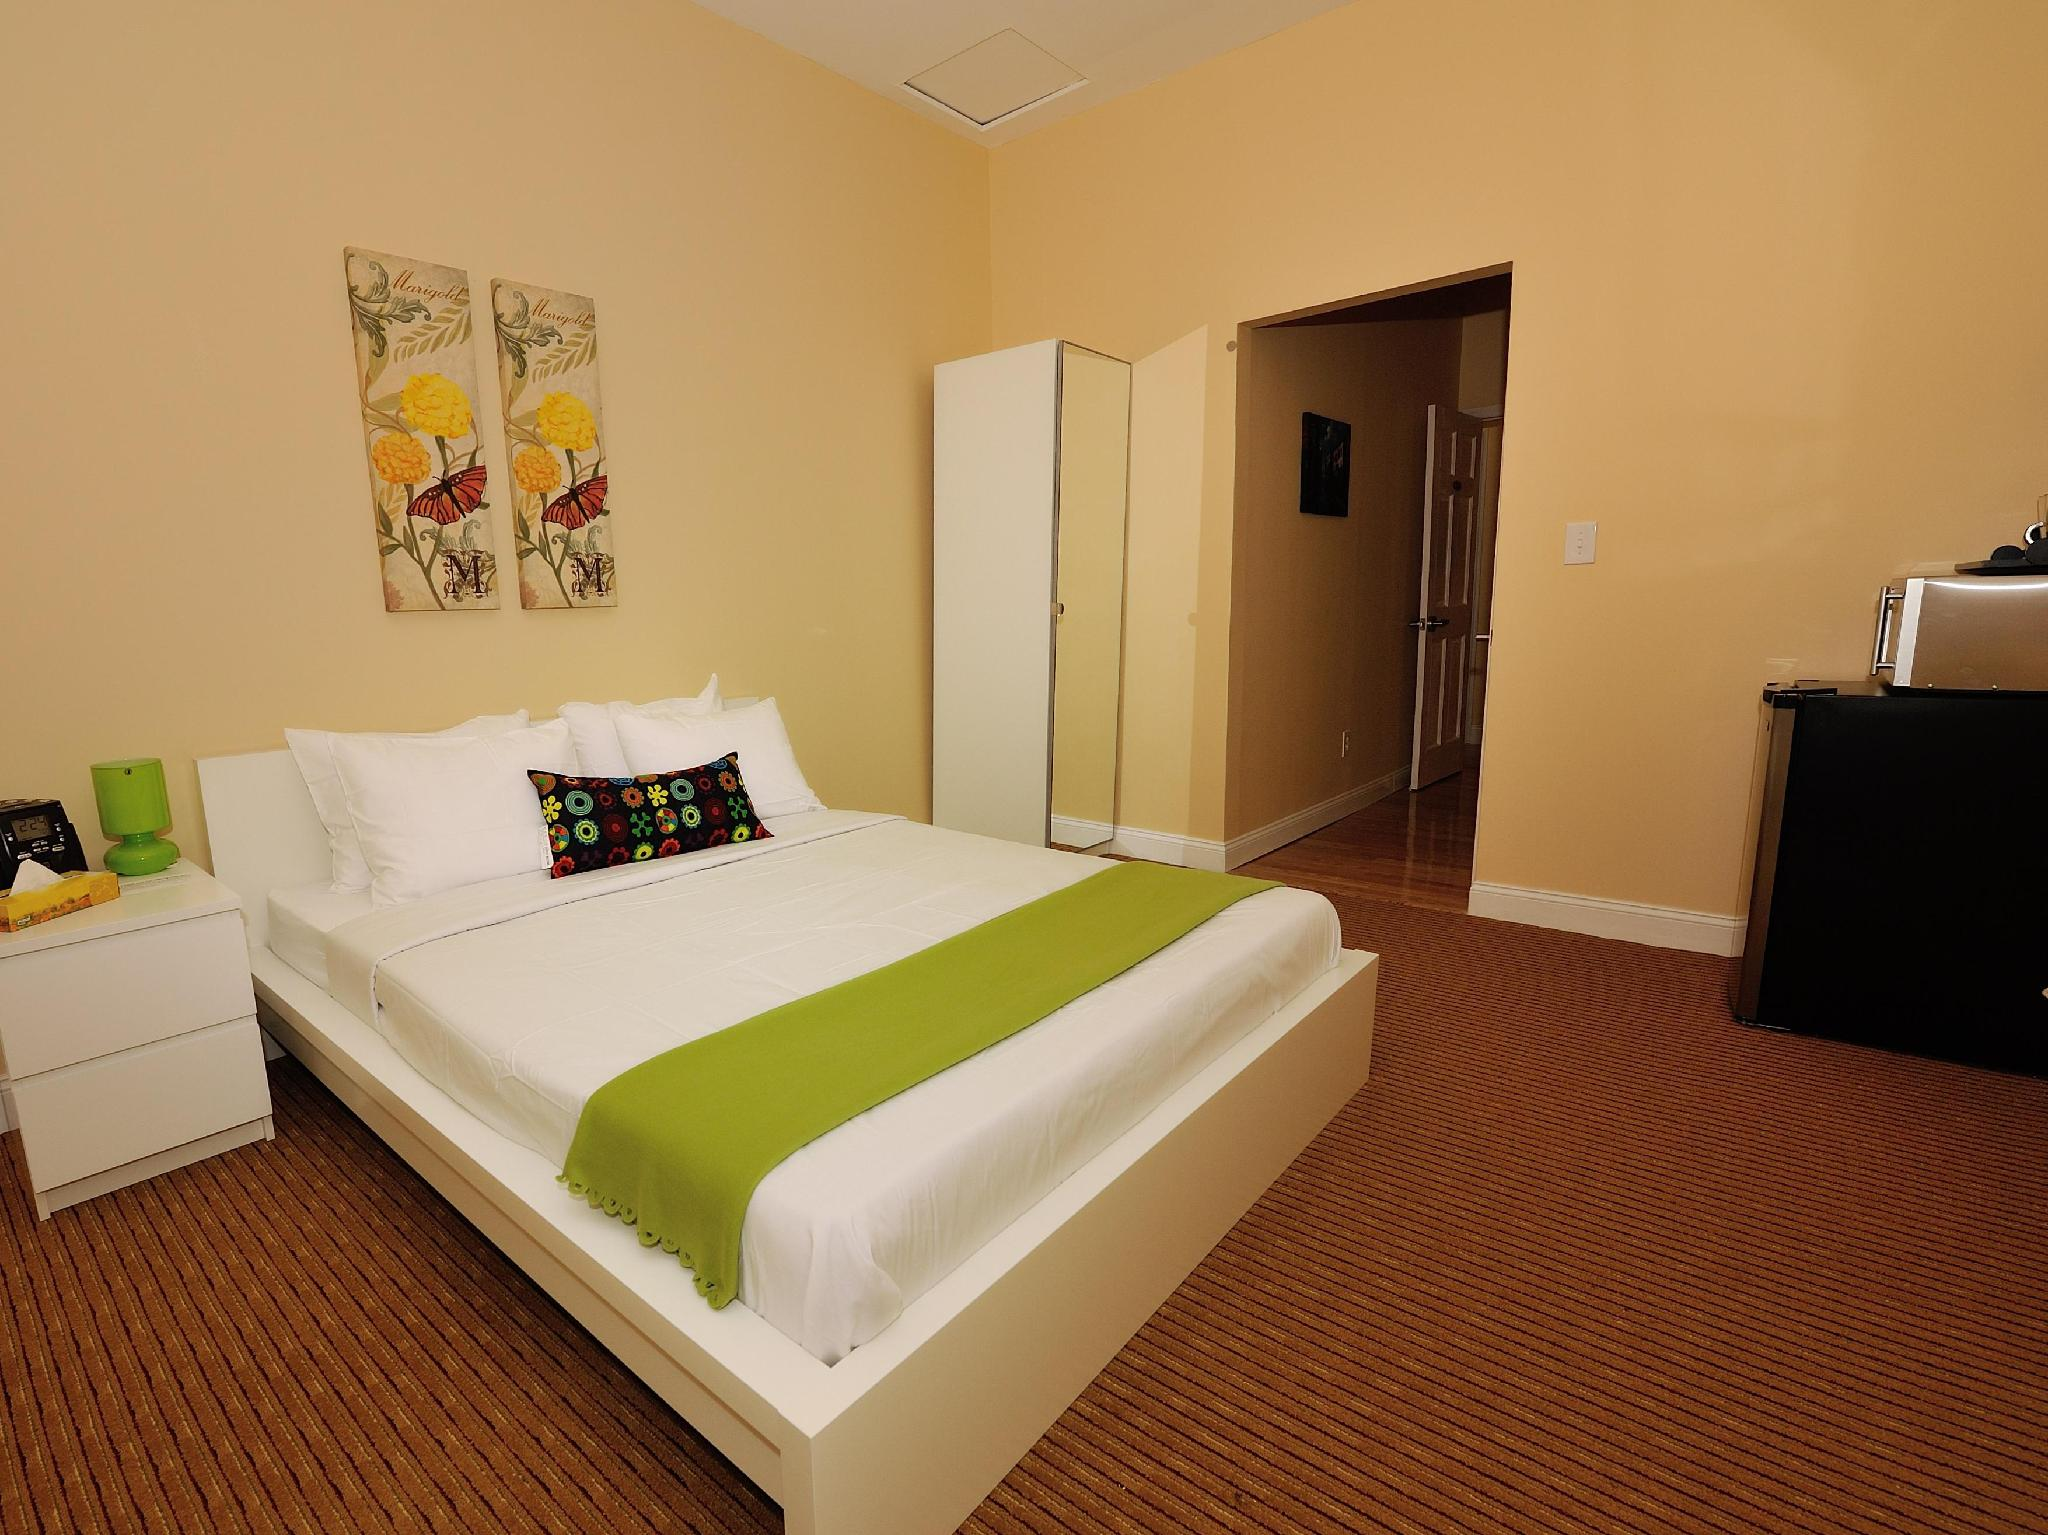 Midwood Suites Brooklyn - Hotel and accommodation in Usa in New York (NY)